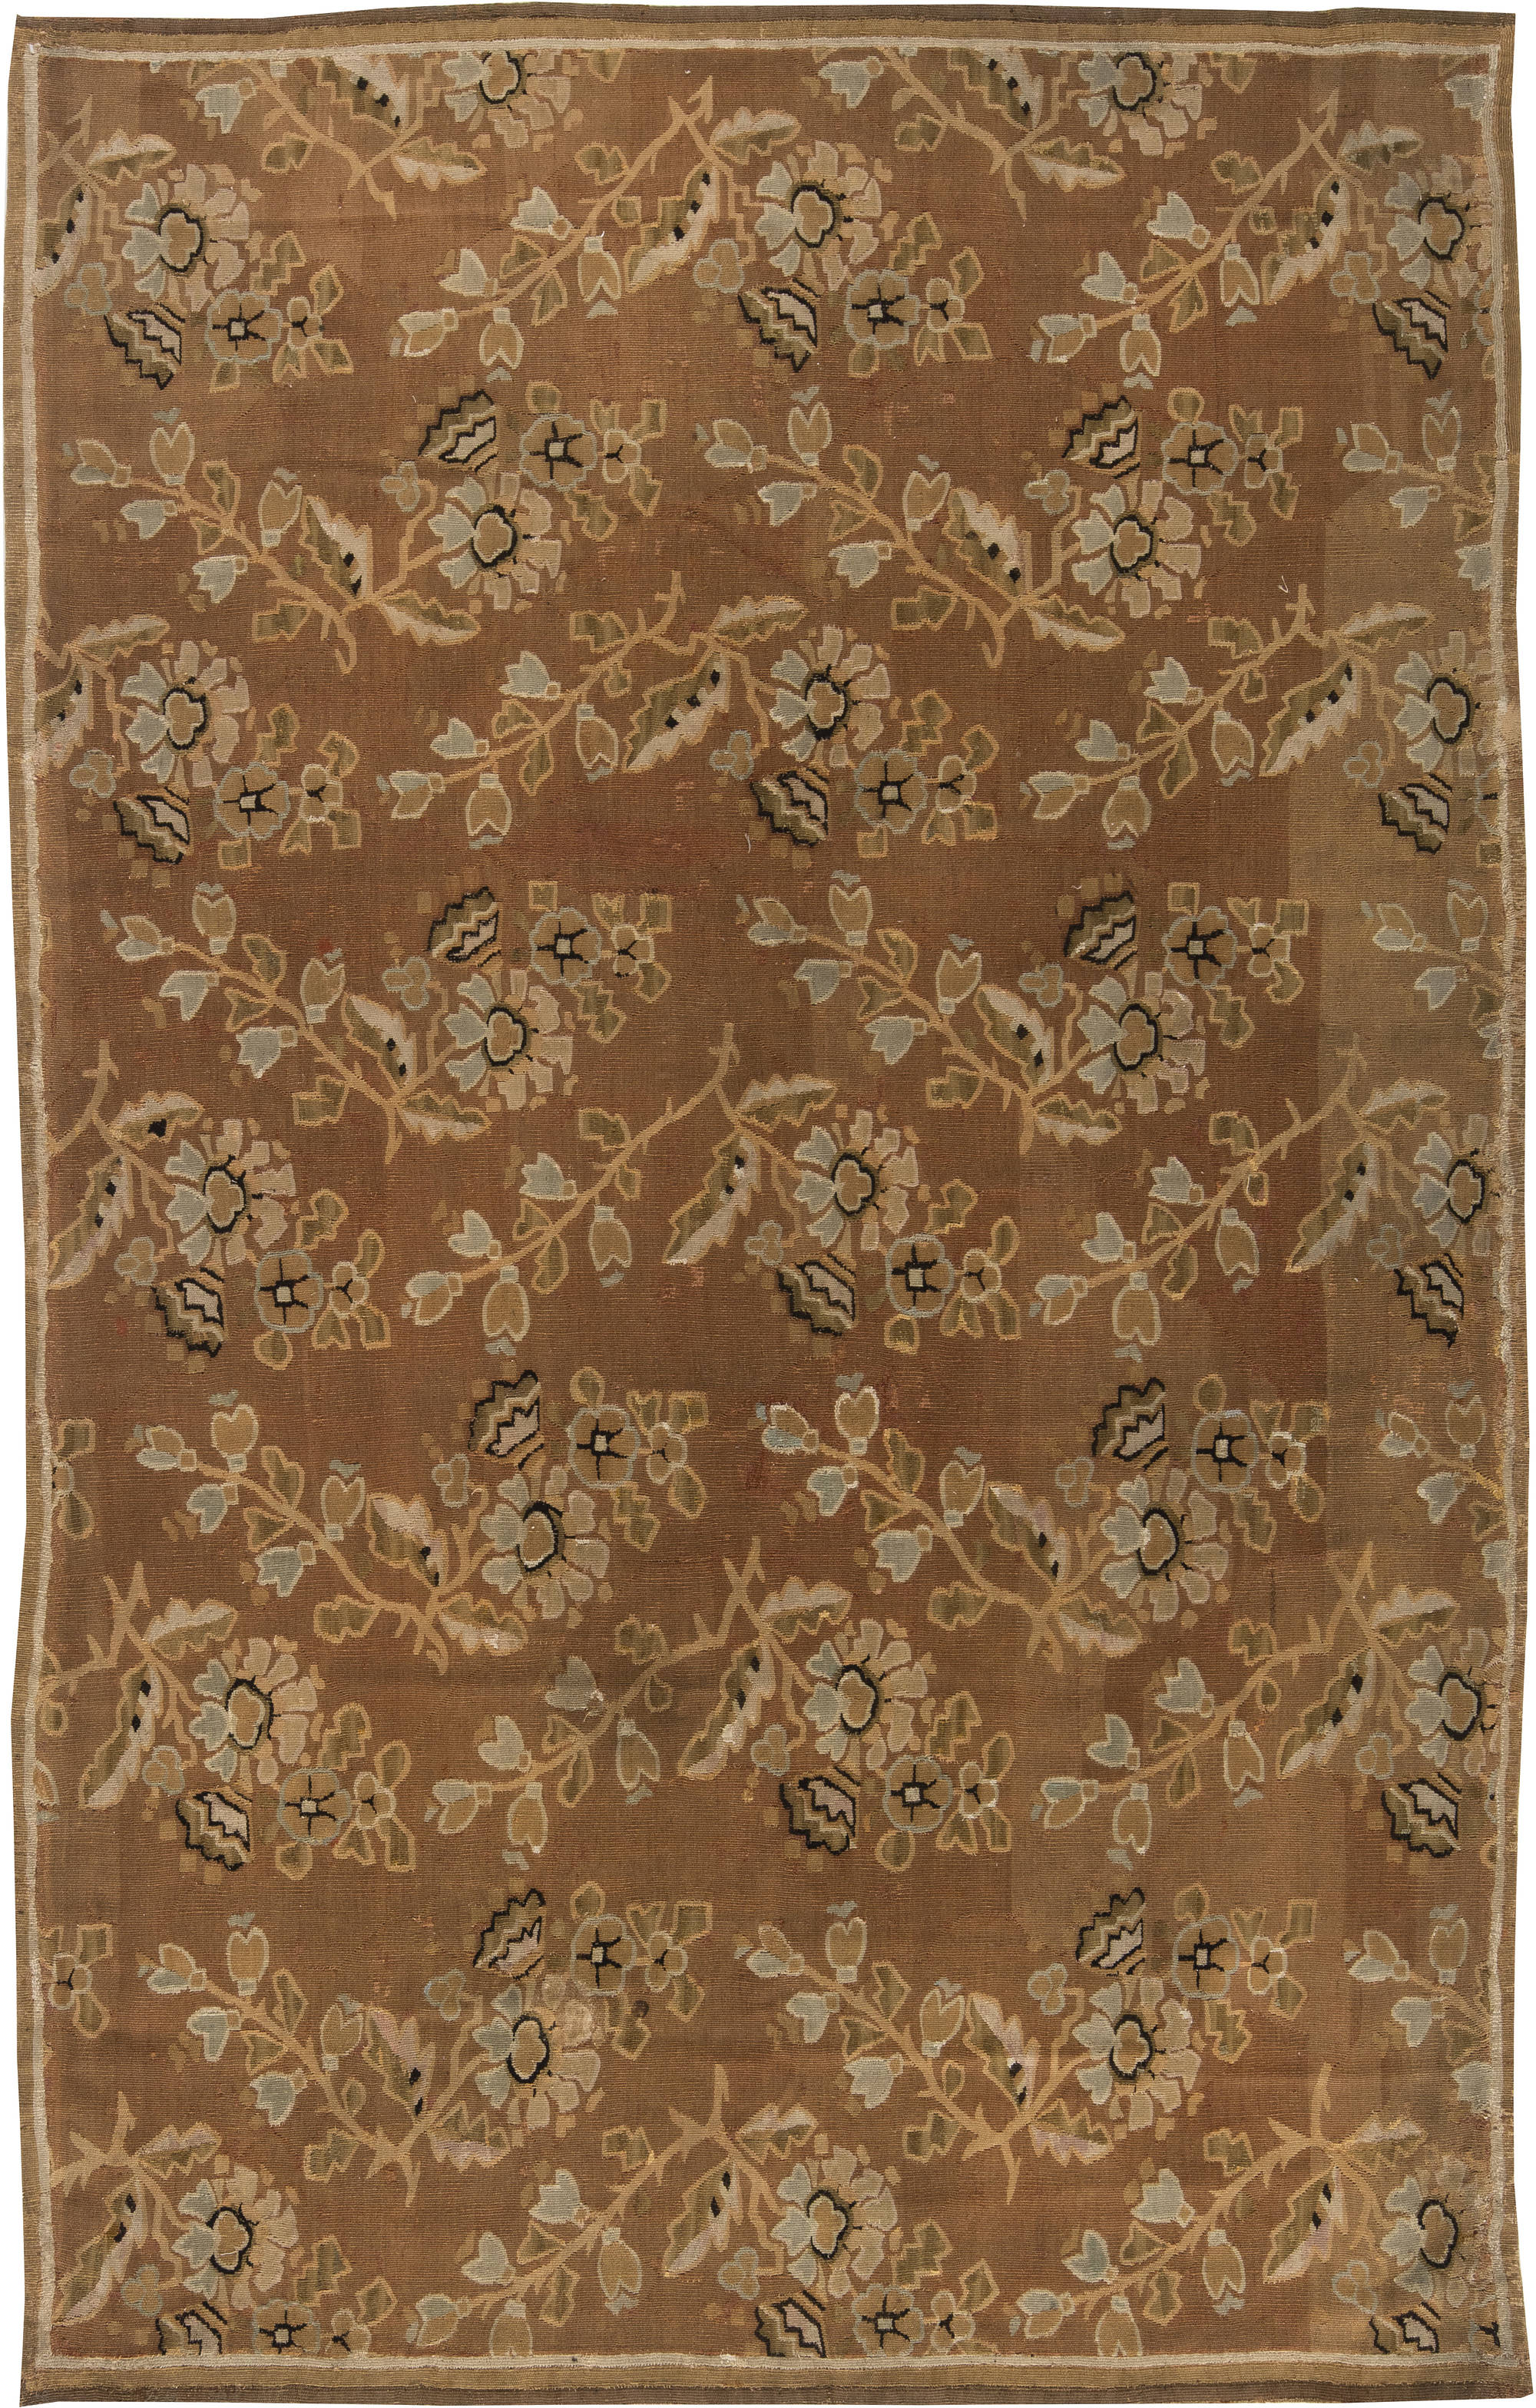 French Rugs Amp Country Area Carpets For Sale European Nyc